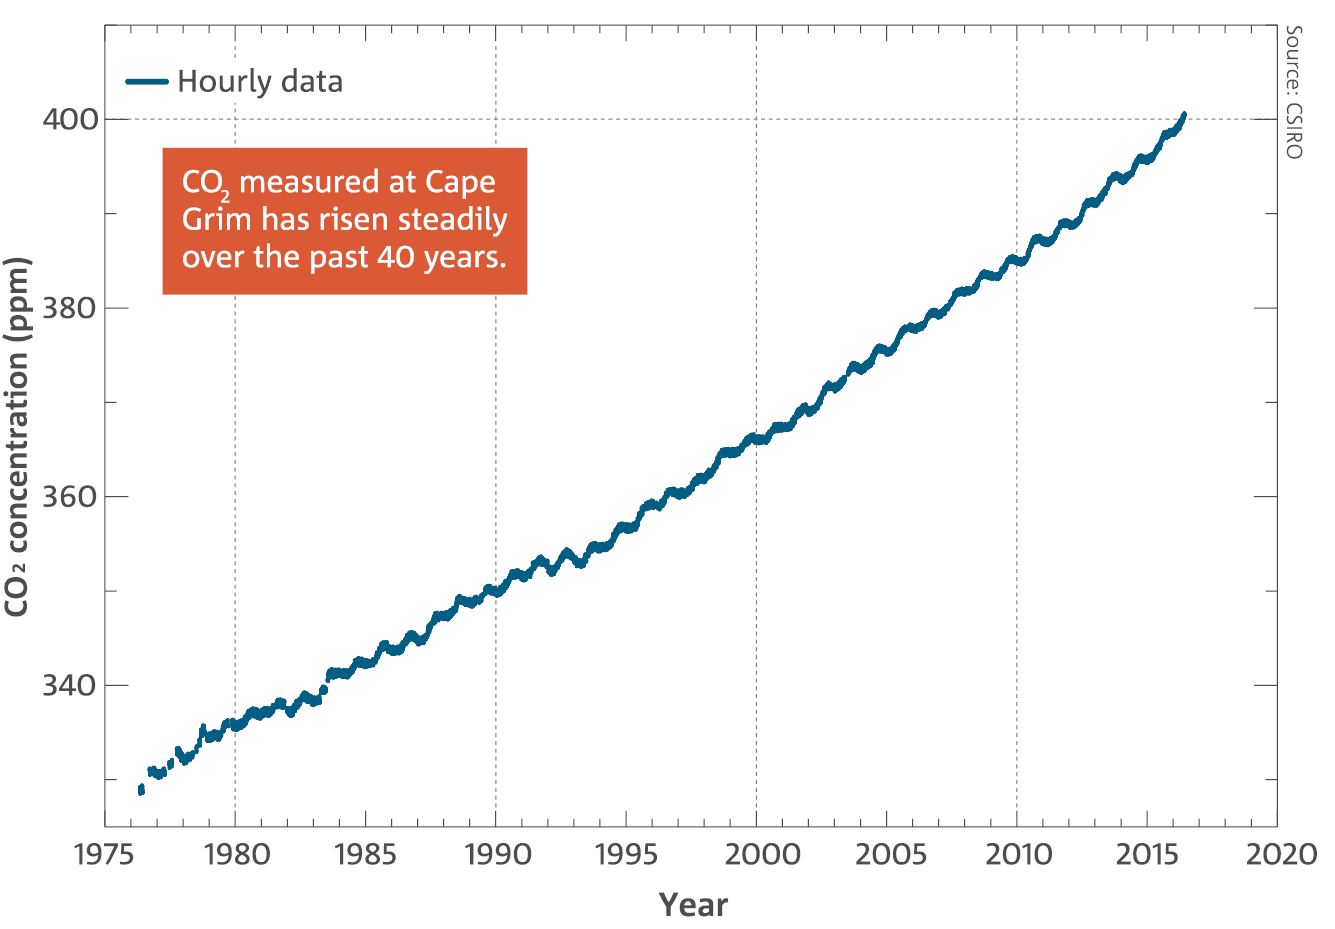 Line chart: Background hourly clean-air CO2 as measured at Cape Grim. CO2 measured at Cape Grim has risen steadily over the past 40 years.